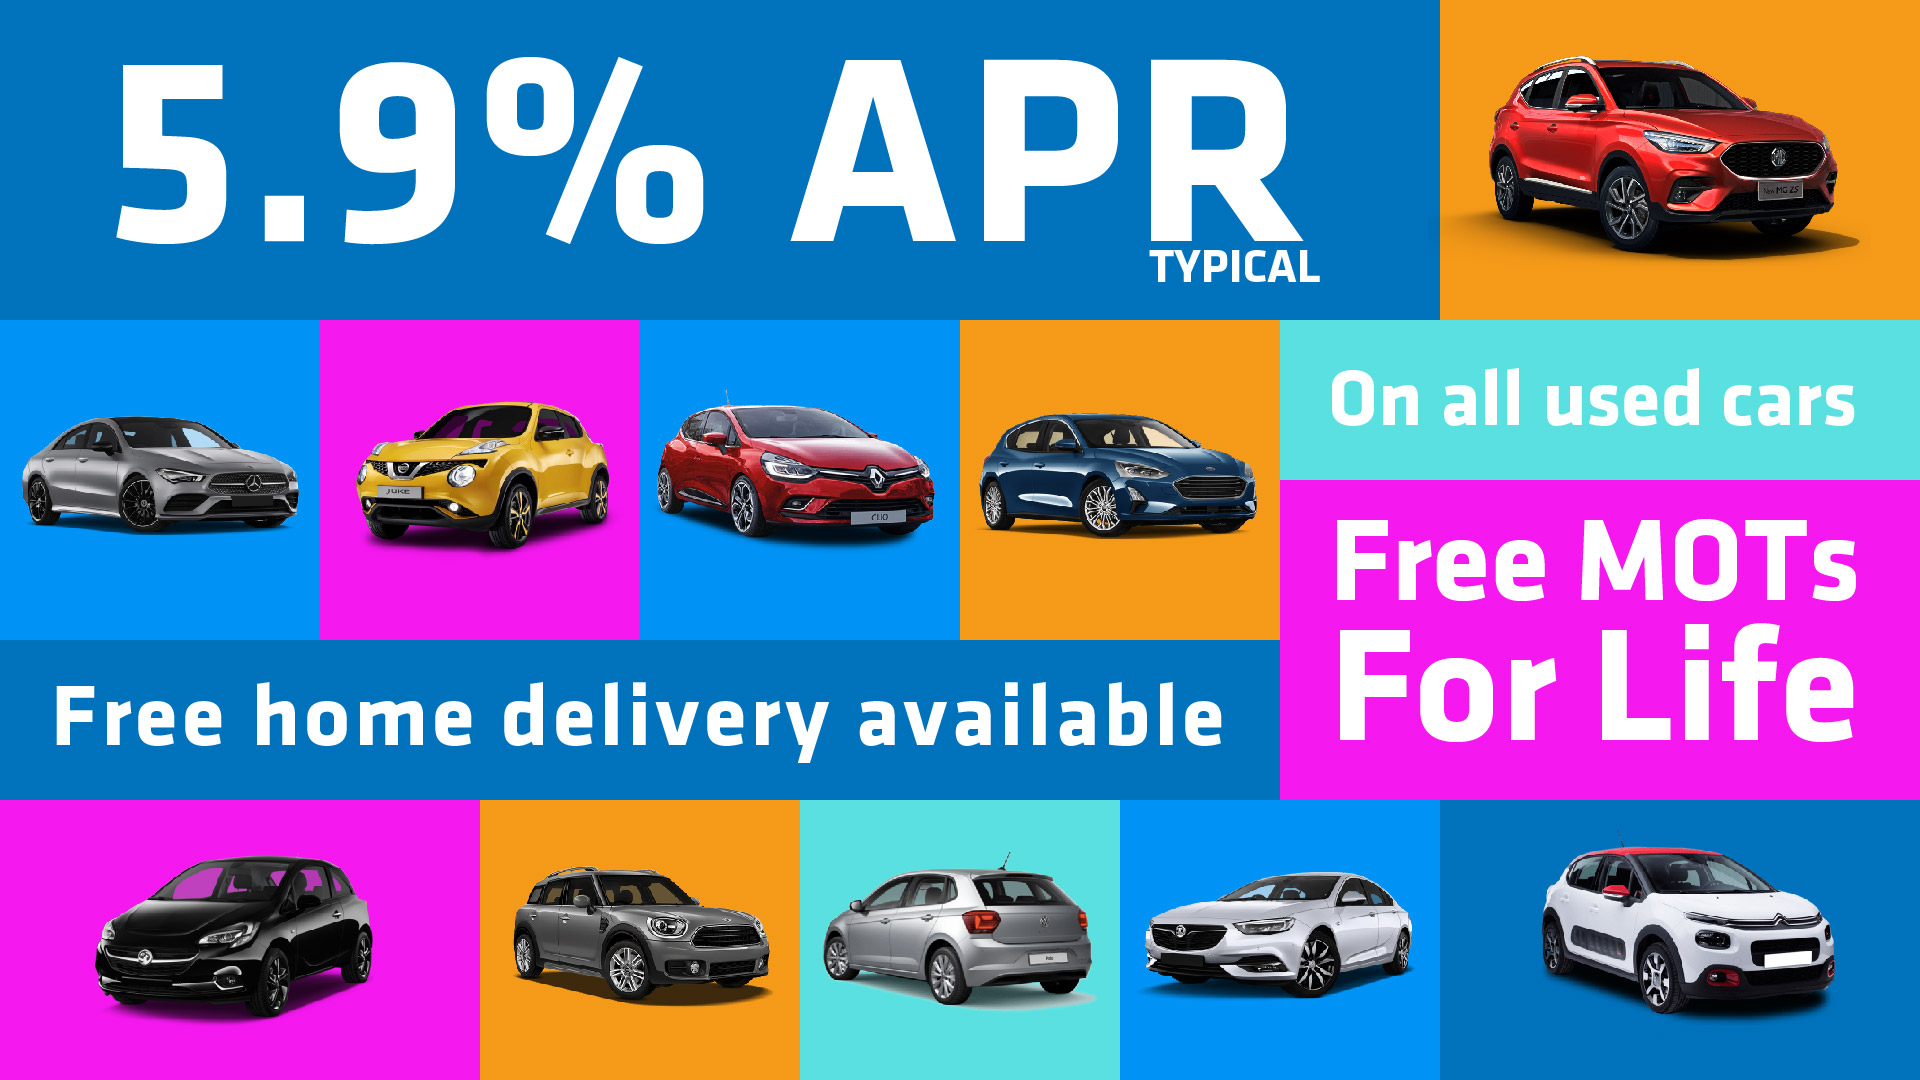 Used Cars | 5.9%APR | Free Home Delivery |